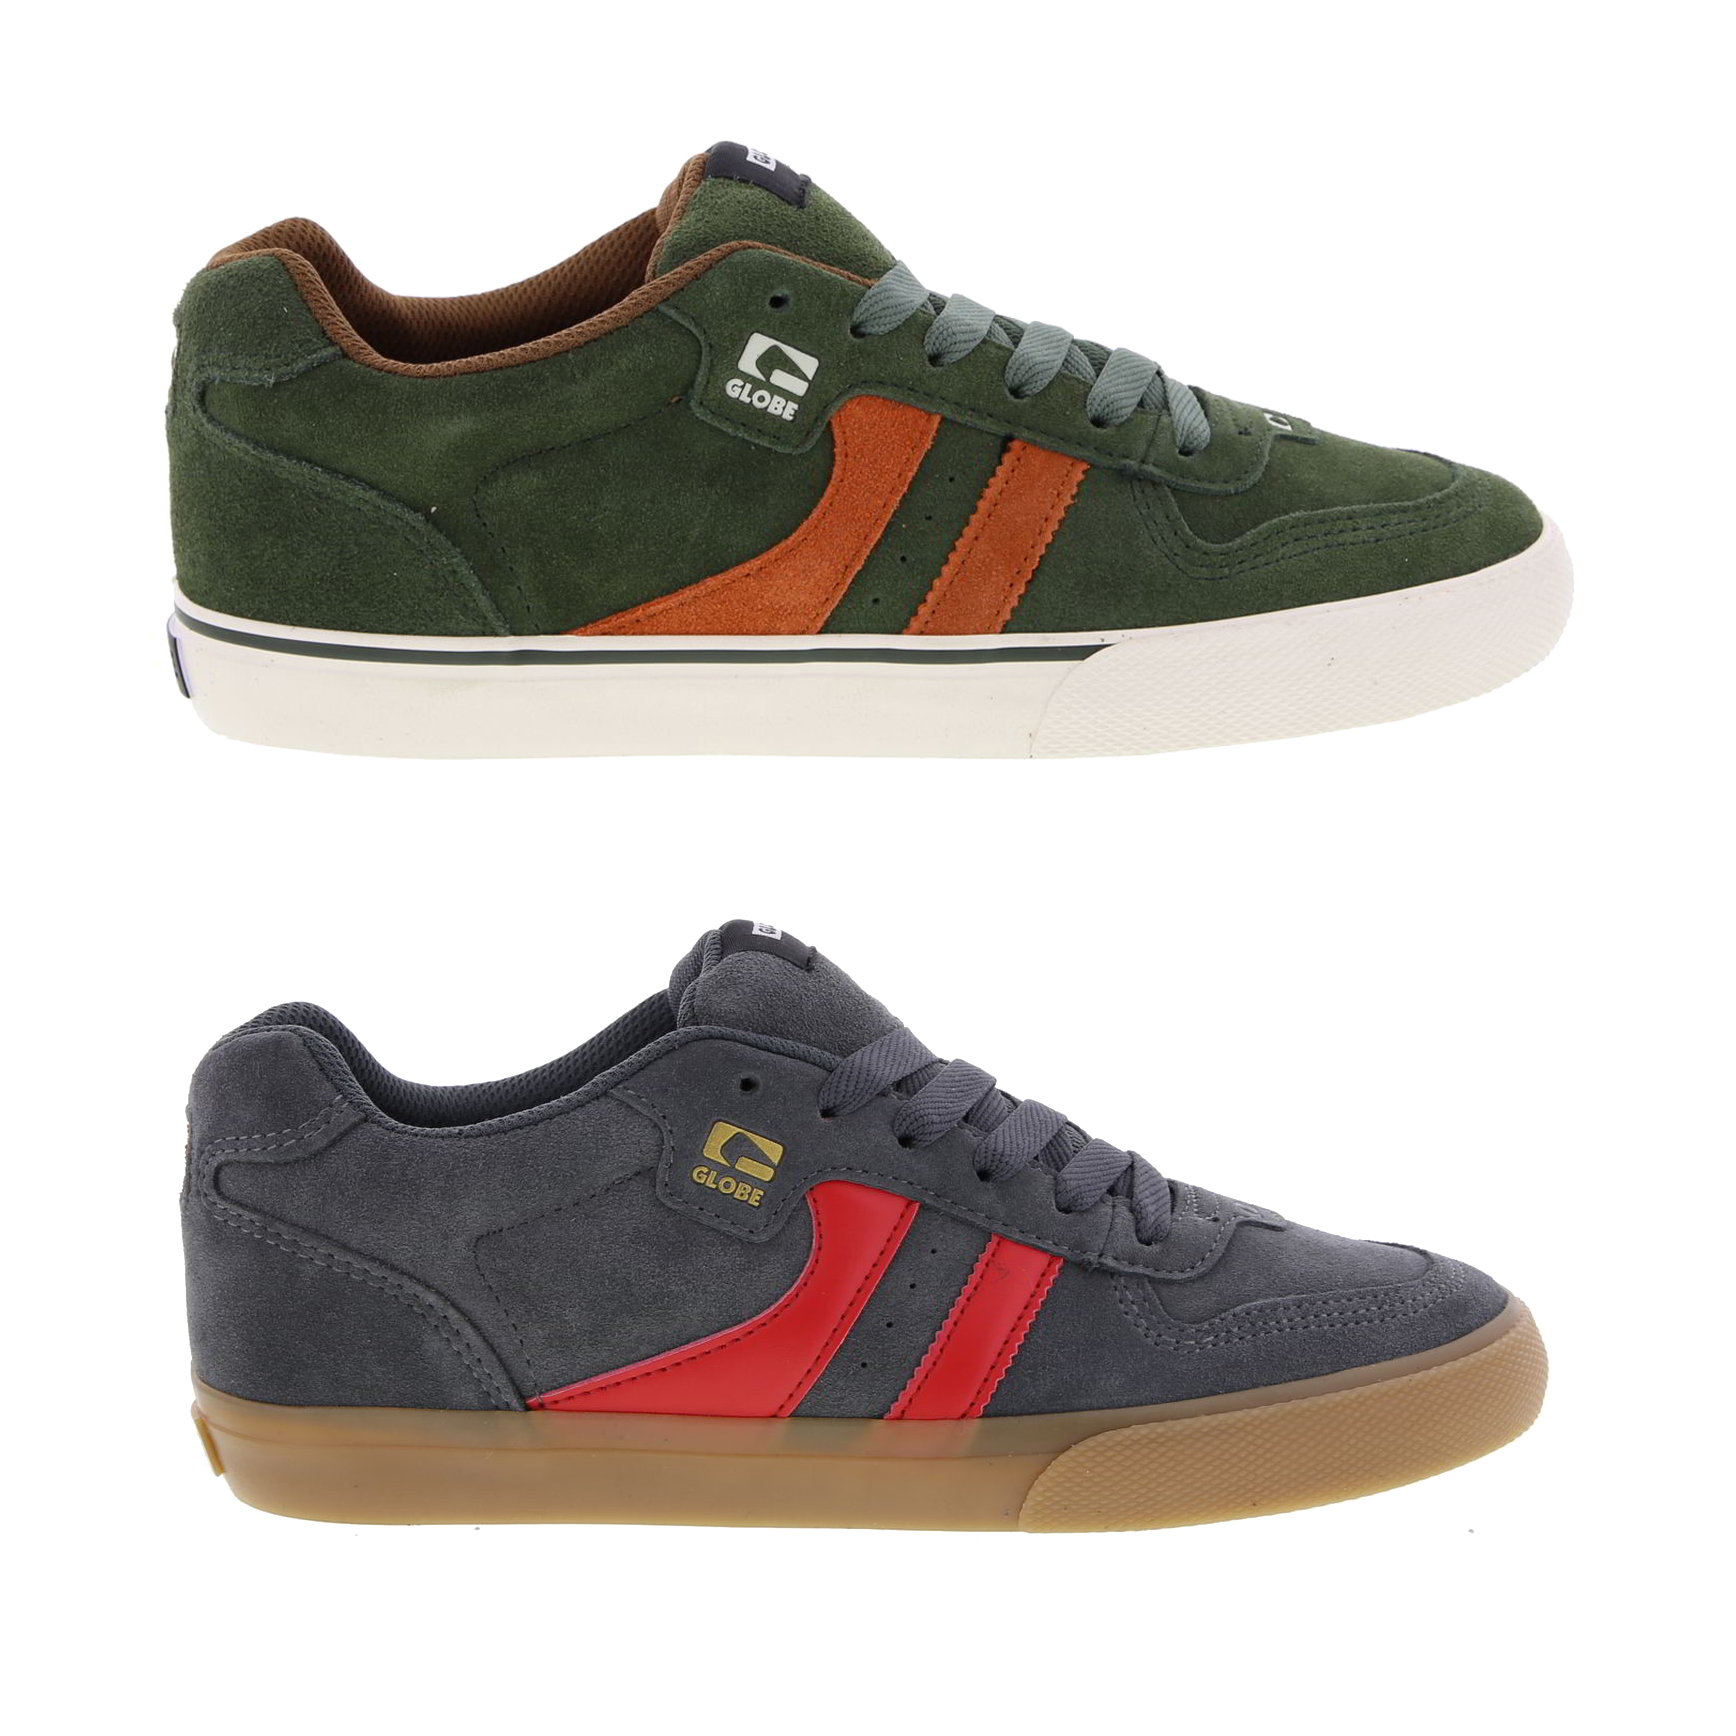 3106428e9 Details about Globe Encore 2 Mens Suede Leather Skate Shoes Trainers Size  8-13